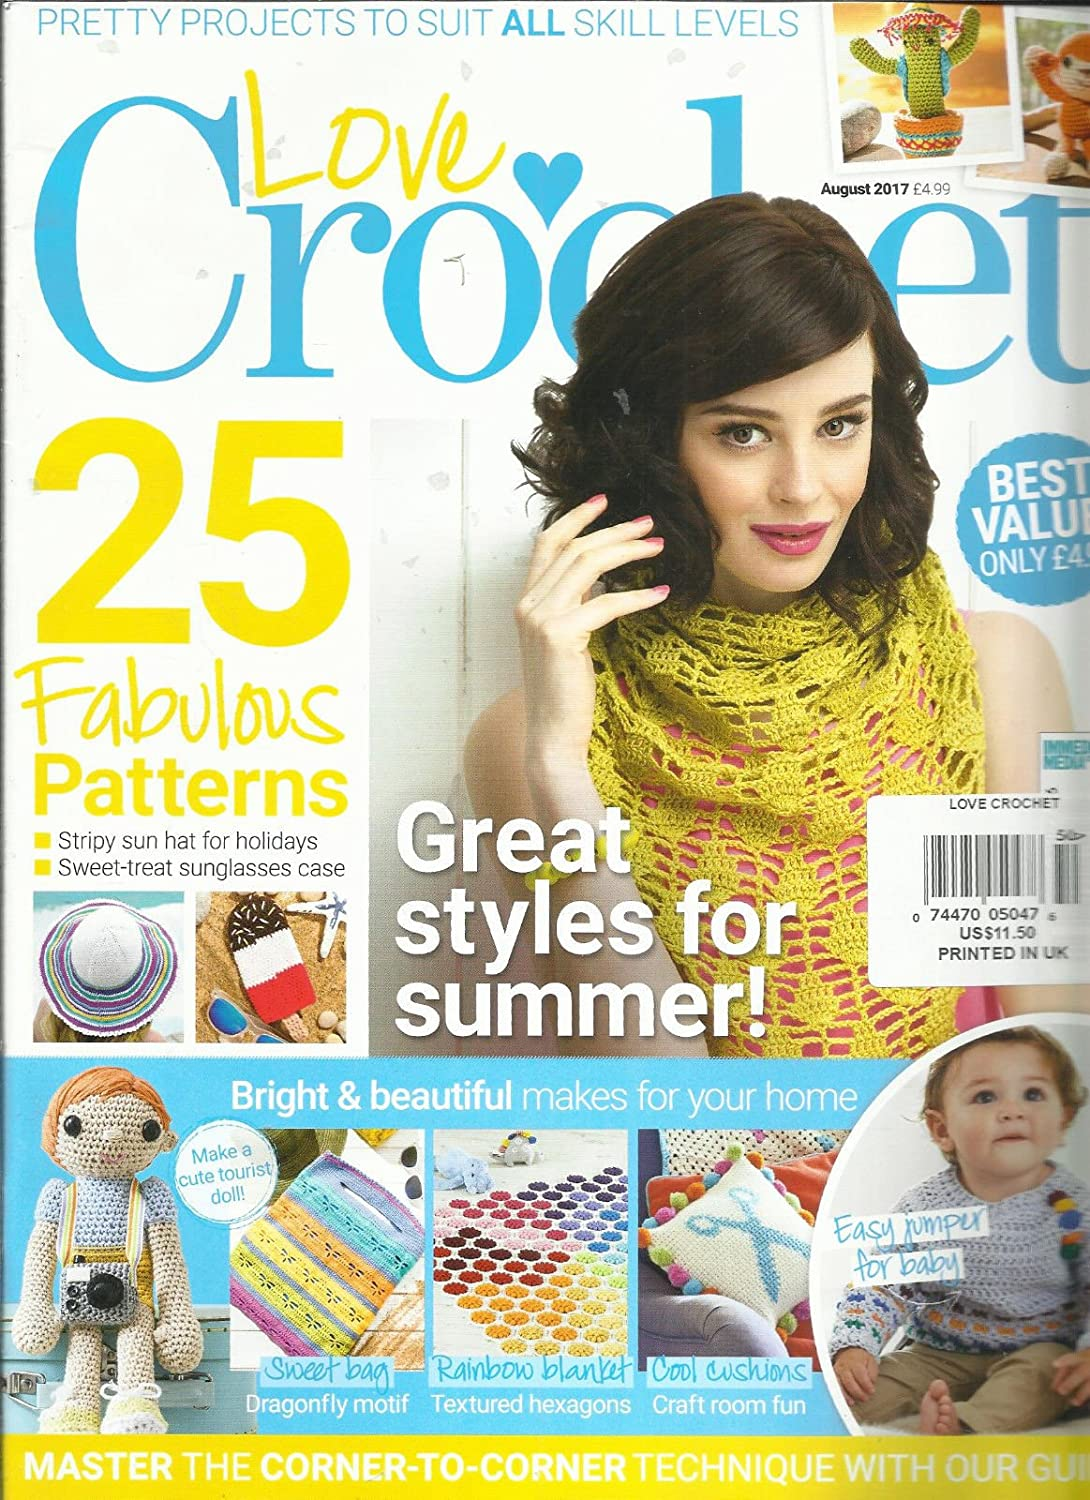 LOVE CROCHET MAGAZINE, AUGUST, 2017 FREE GIFTS OR INSERTS ARE NOT INCLUDED. s3457